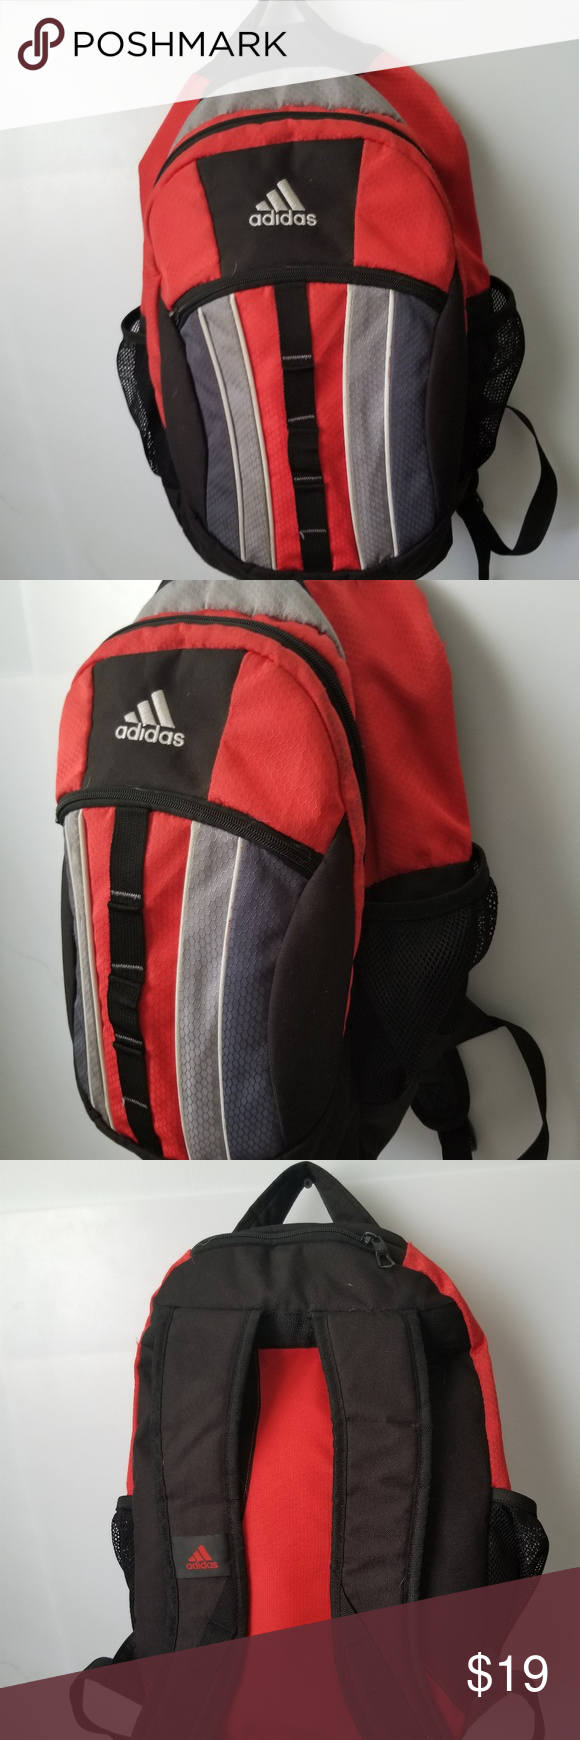 ... Adidas Back Pack Three Front Zippers Adjustable Strap Two Side Pockets adidas  Bags Backpacks super popular ... 31d4b0342f